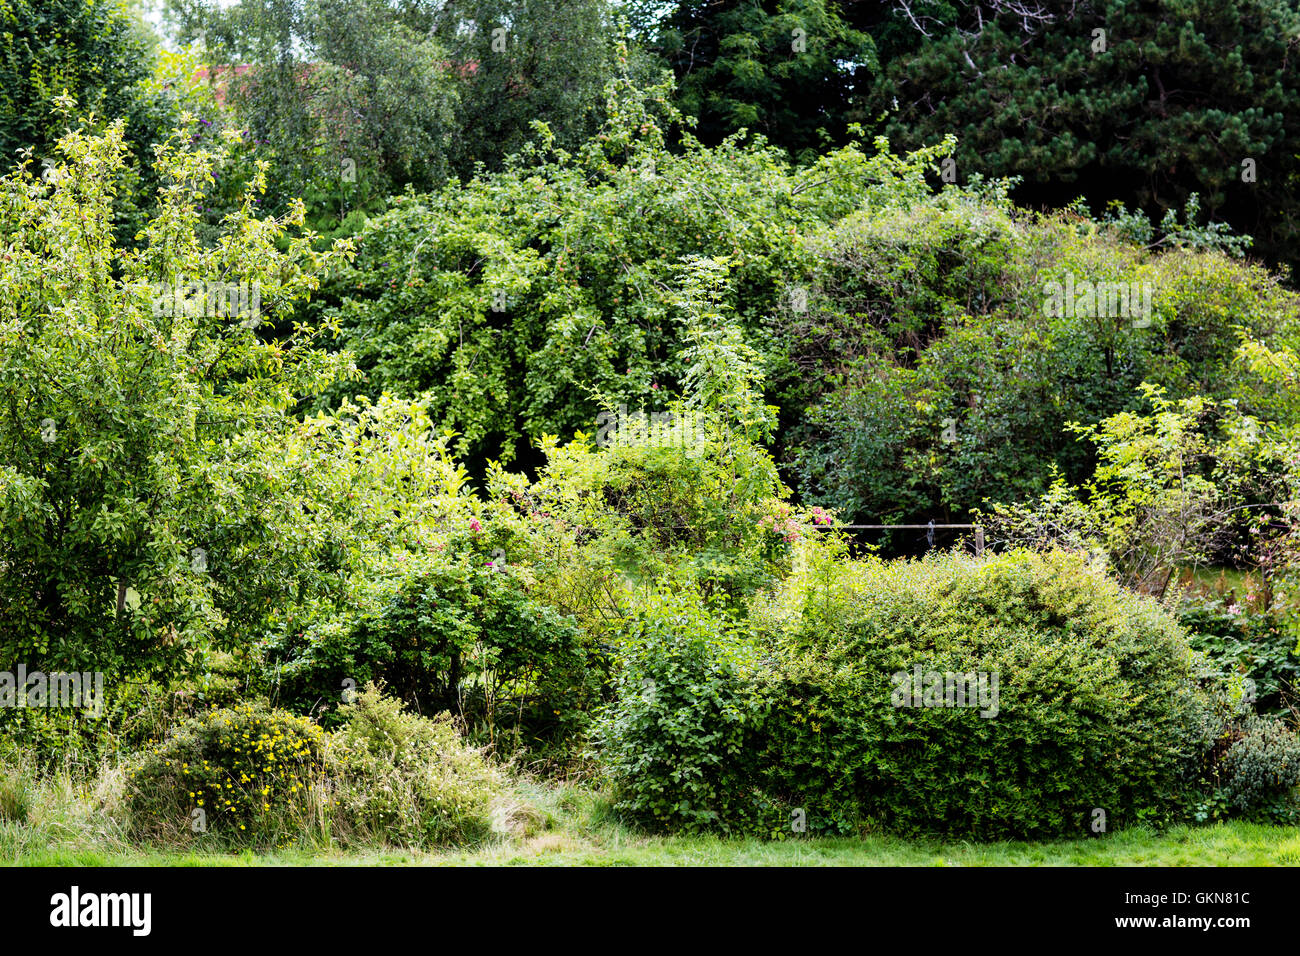 dense wild undergrowth and bushes outside in various shades of